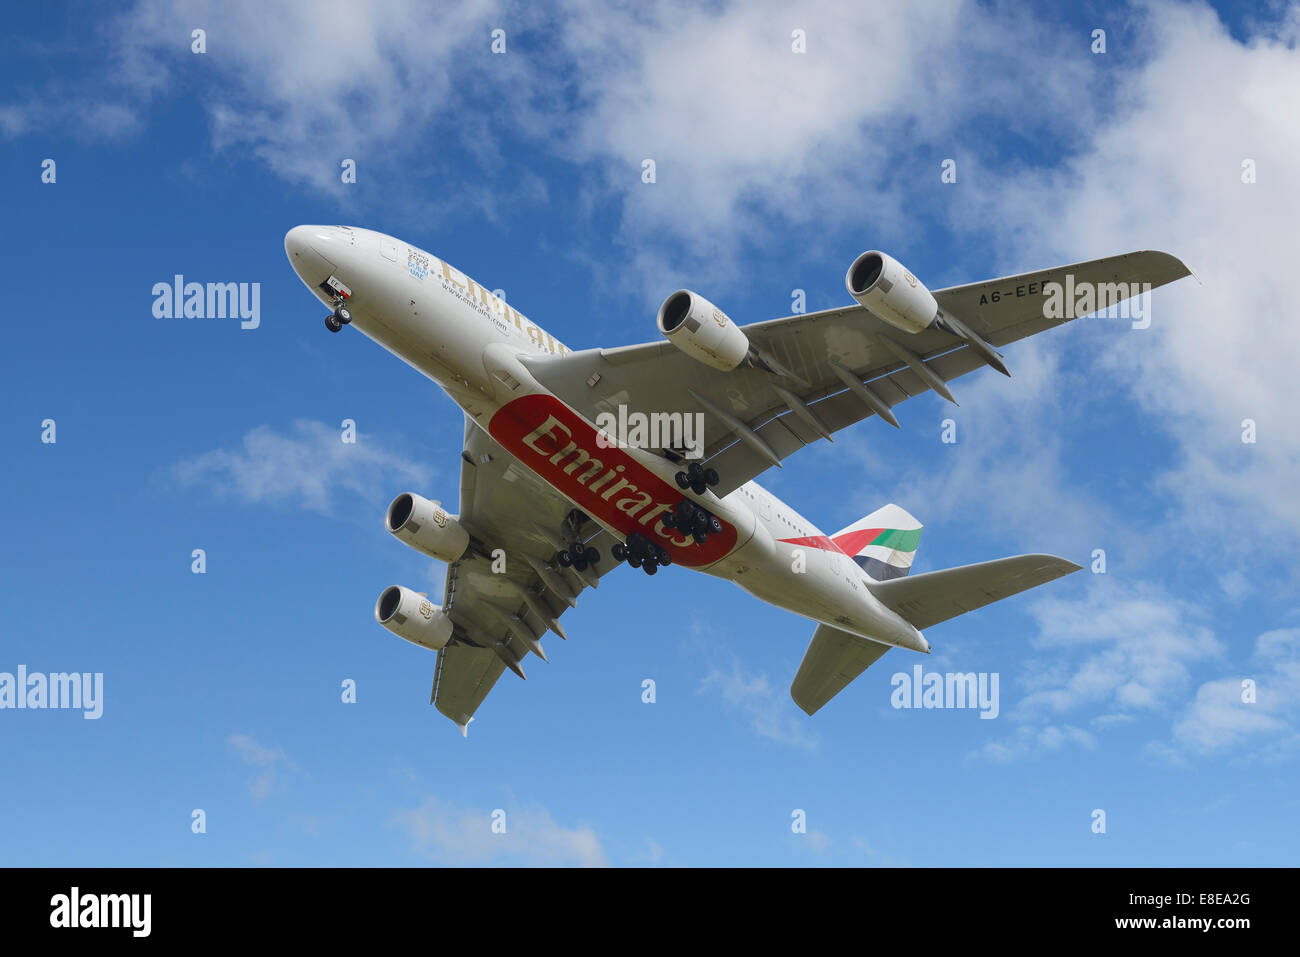 Emirates Airbus A380 aircraft on the final approach to Manchester Airport UK - Stock Image